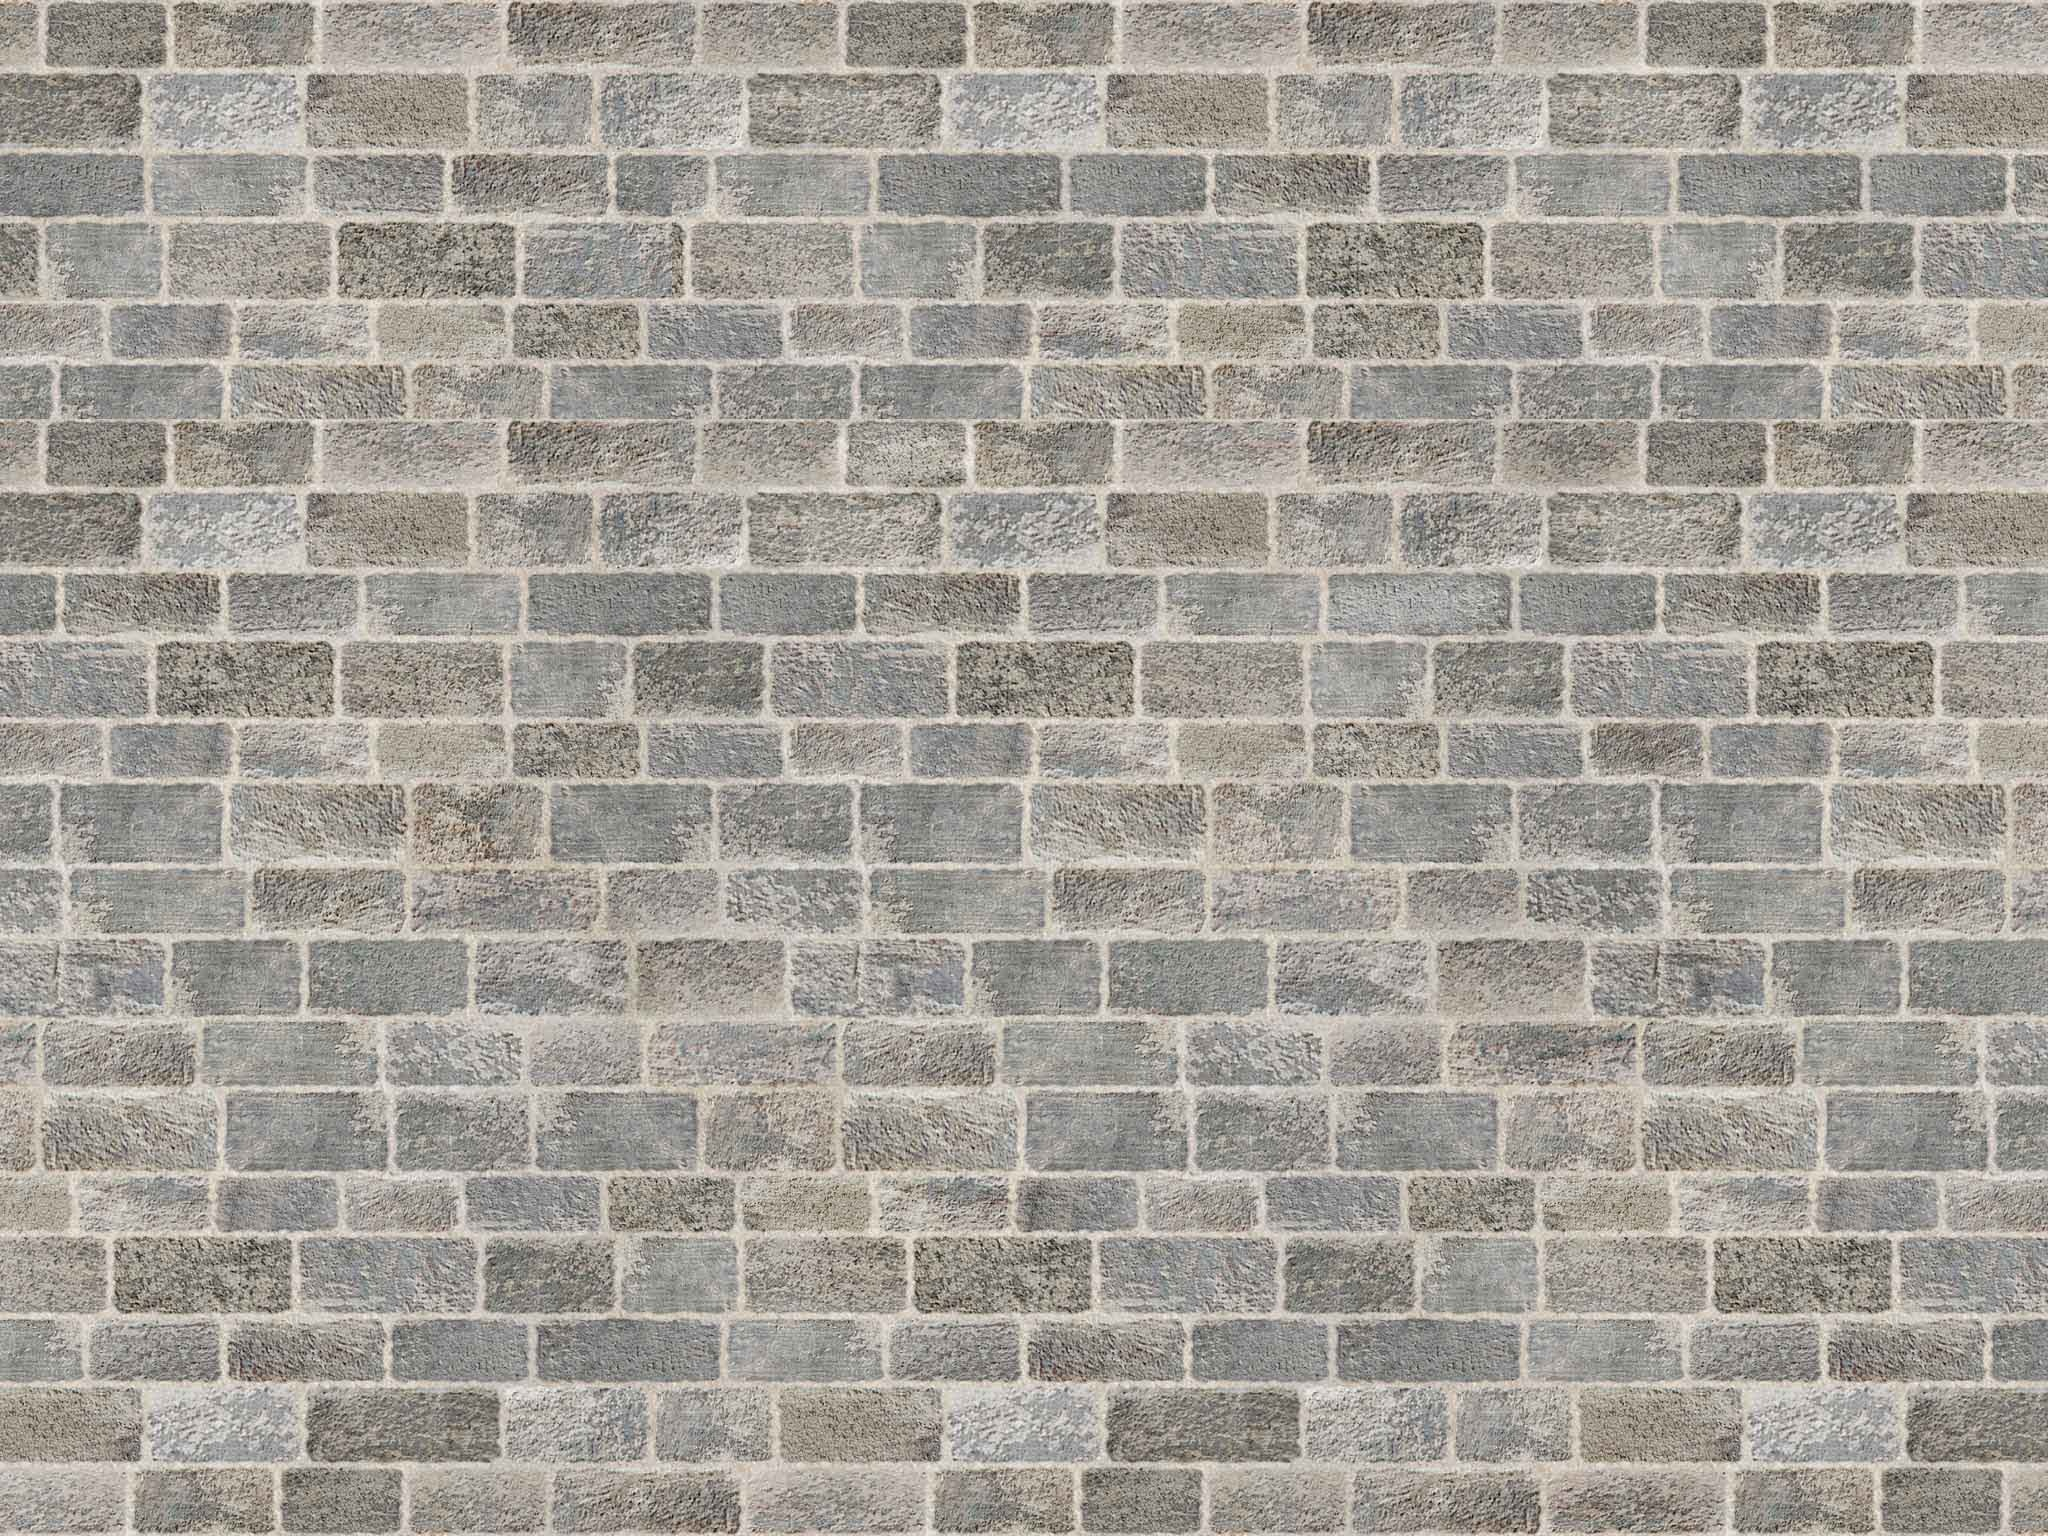 Wall bricks free stock photo for Wallpapering a wall